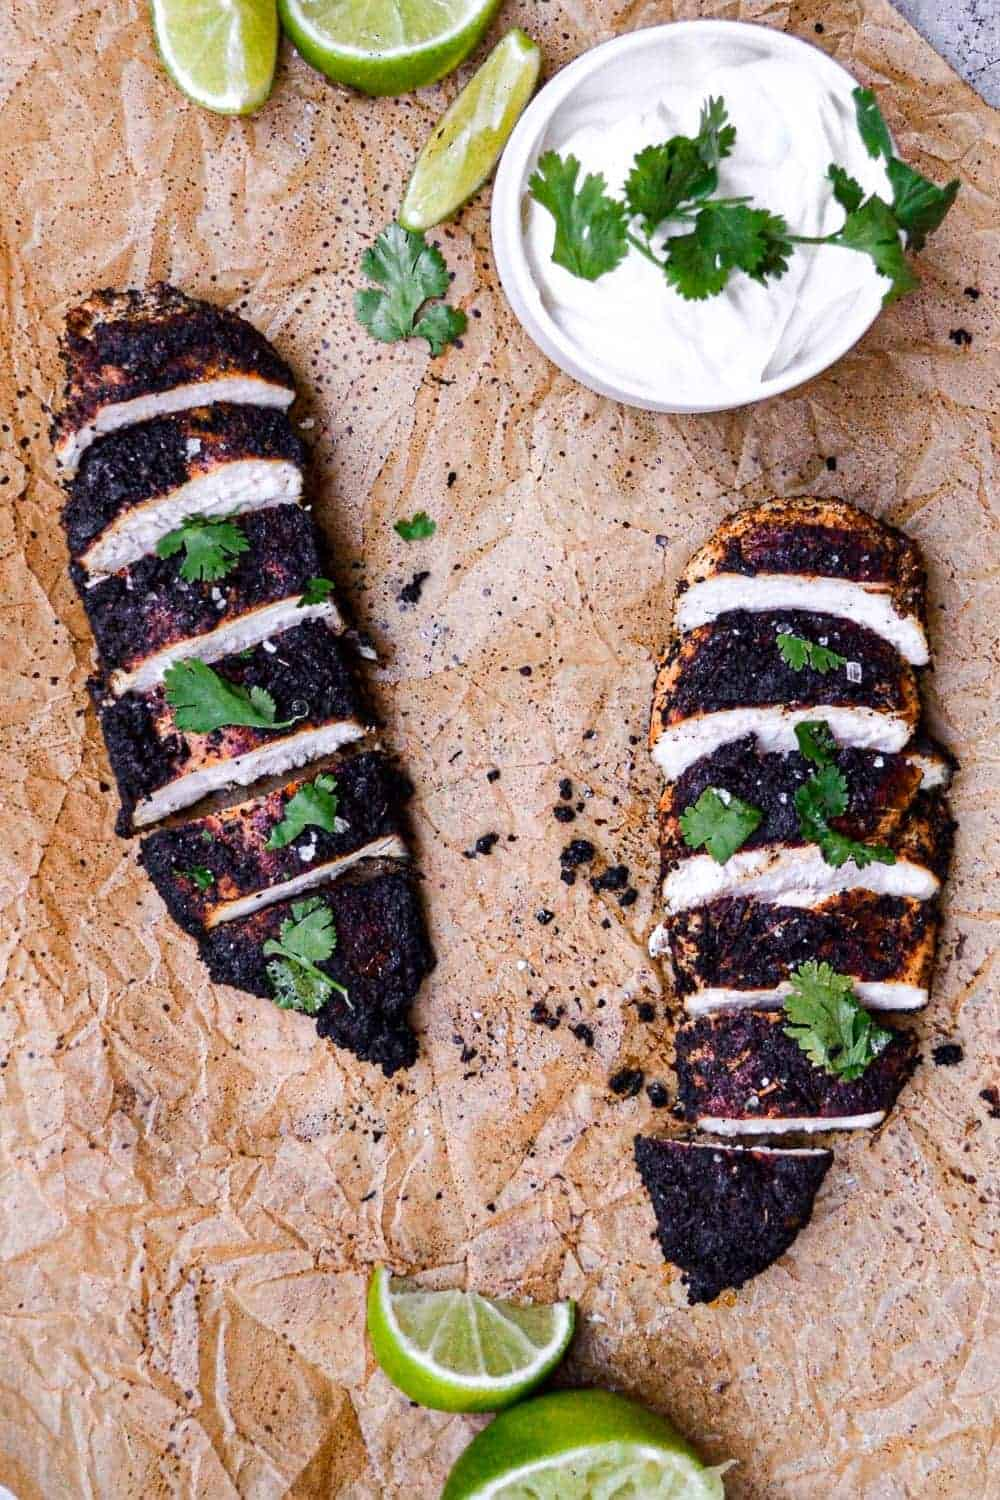 Blackened chicken served with sour cream dip